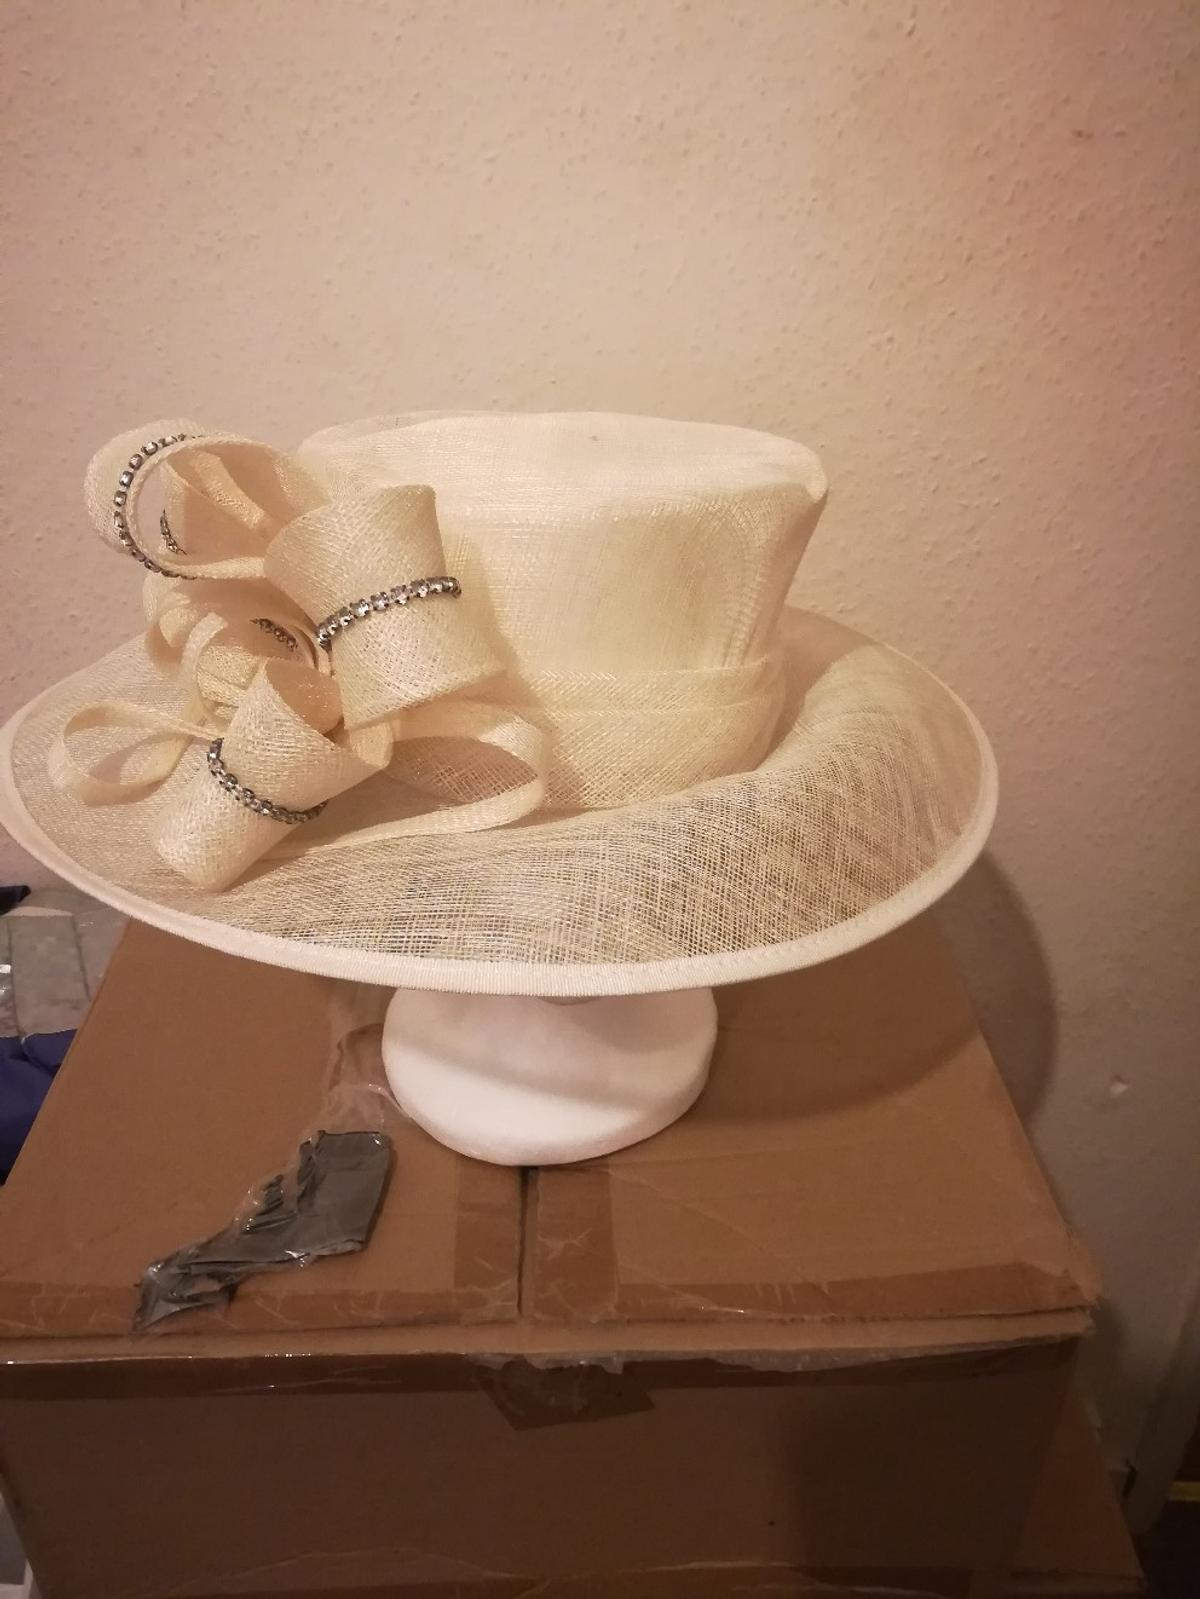 ed45353b4c456 occasion hat in ivory in RG2 Reading for £40.00 for sale - Shpock